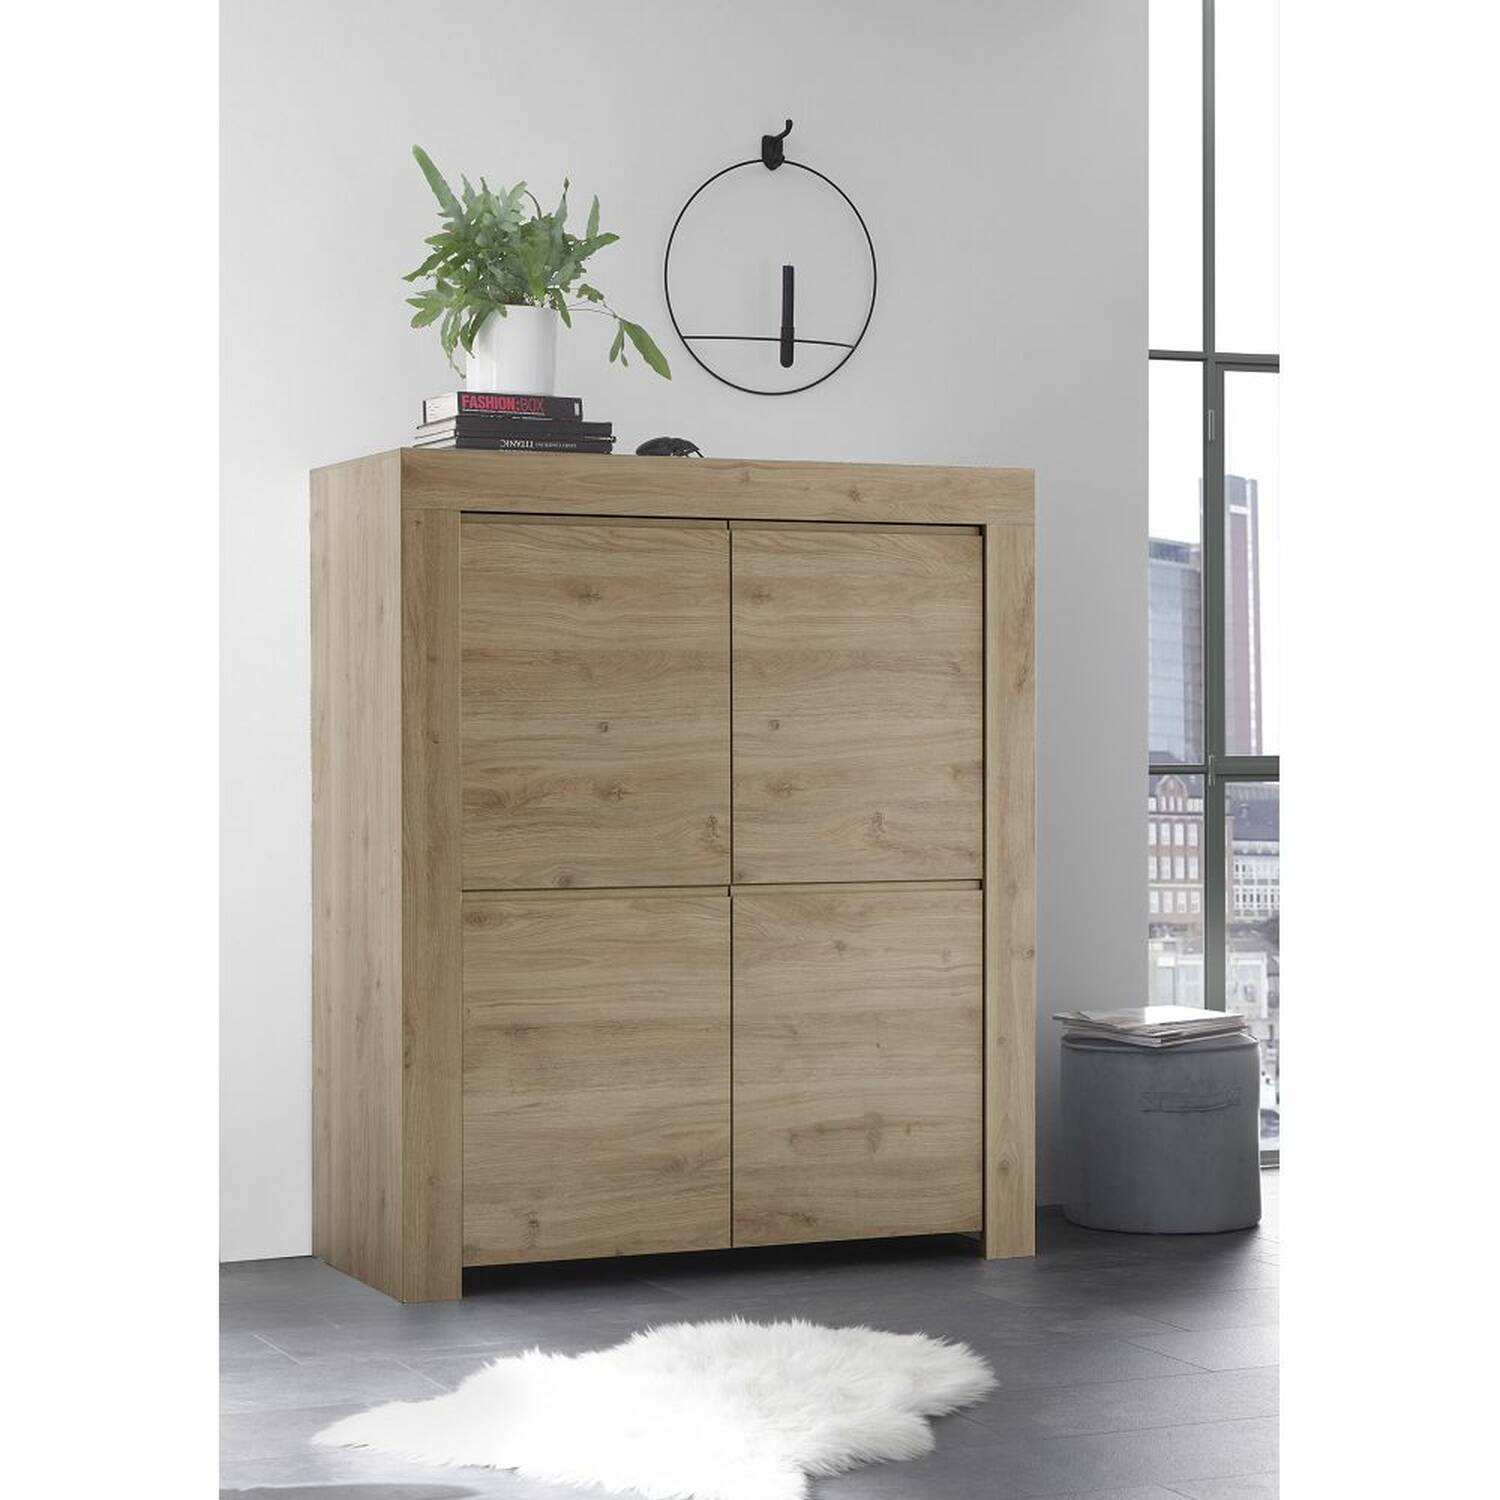 Esszimmer Highboard Wohn Esszimmer Highboard Farum 63 In Eiche Cadiz Nb Griffloses Design B H T 110 140 42cm